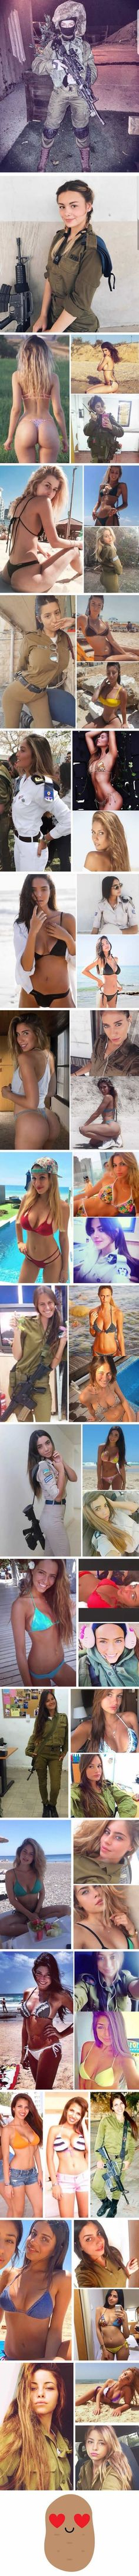 Israeli Female Soldiers Are A Supermodel Army